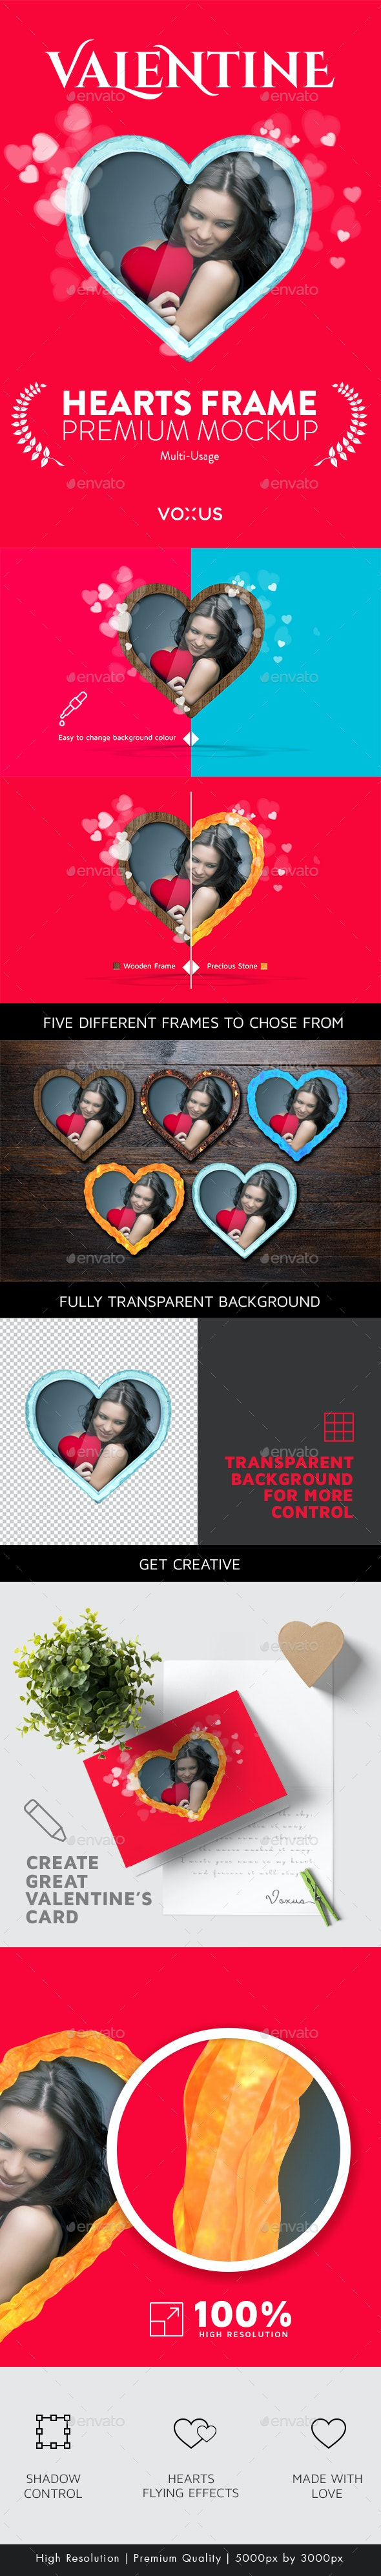 Valentine's Edition - Heart Frame Mockup - Miscellaneous Backgrounds